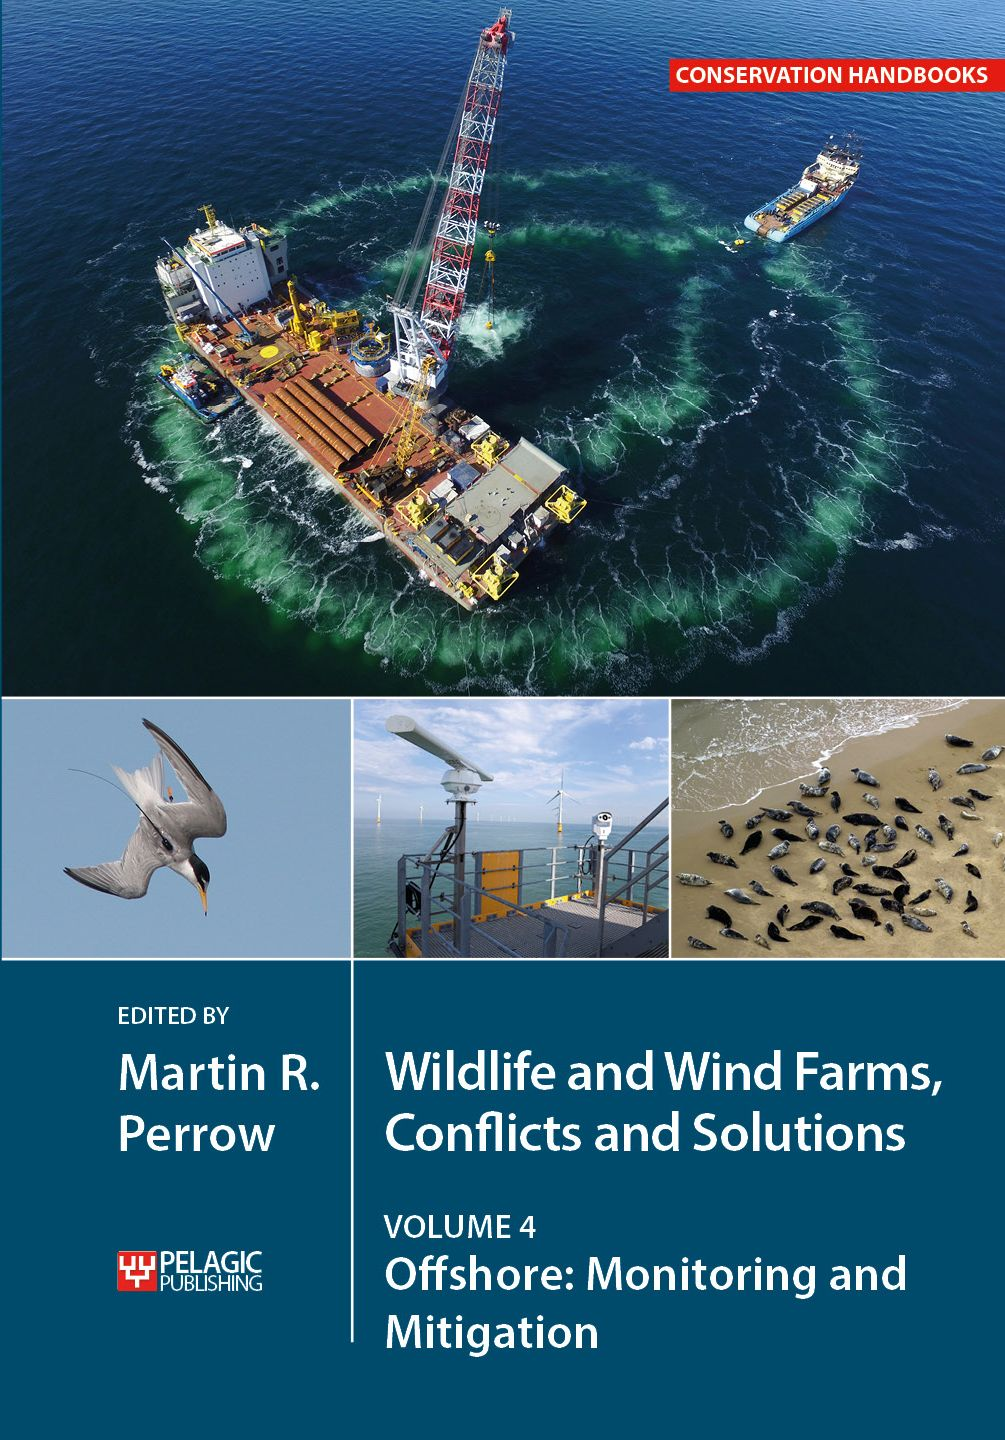 Wildlife and Wind Farms - Conflicts and Solutions, Volume 4 - Pelagic Publishing